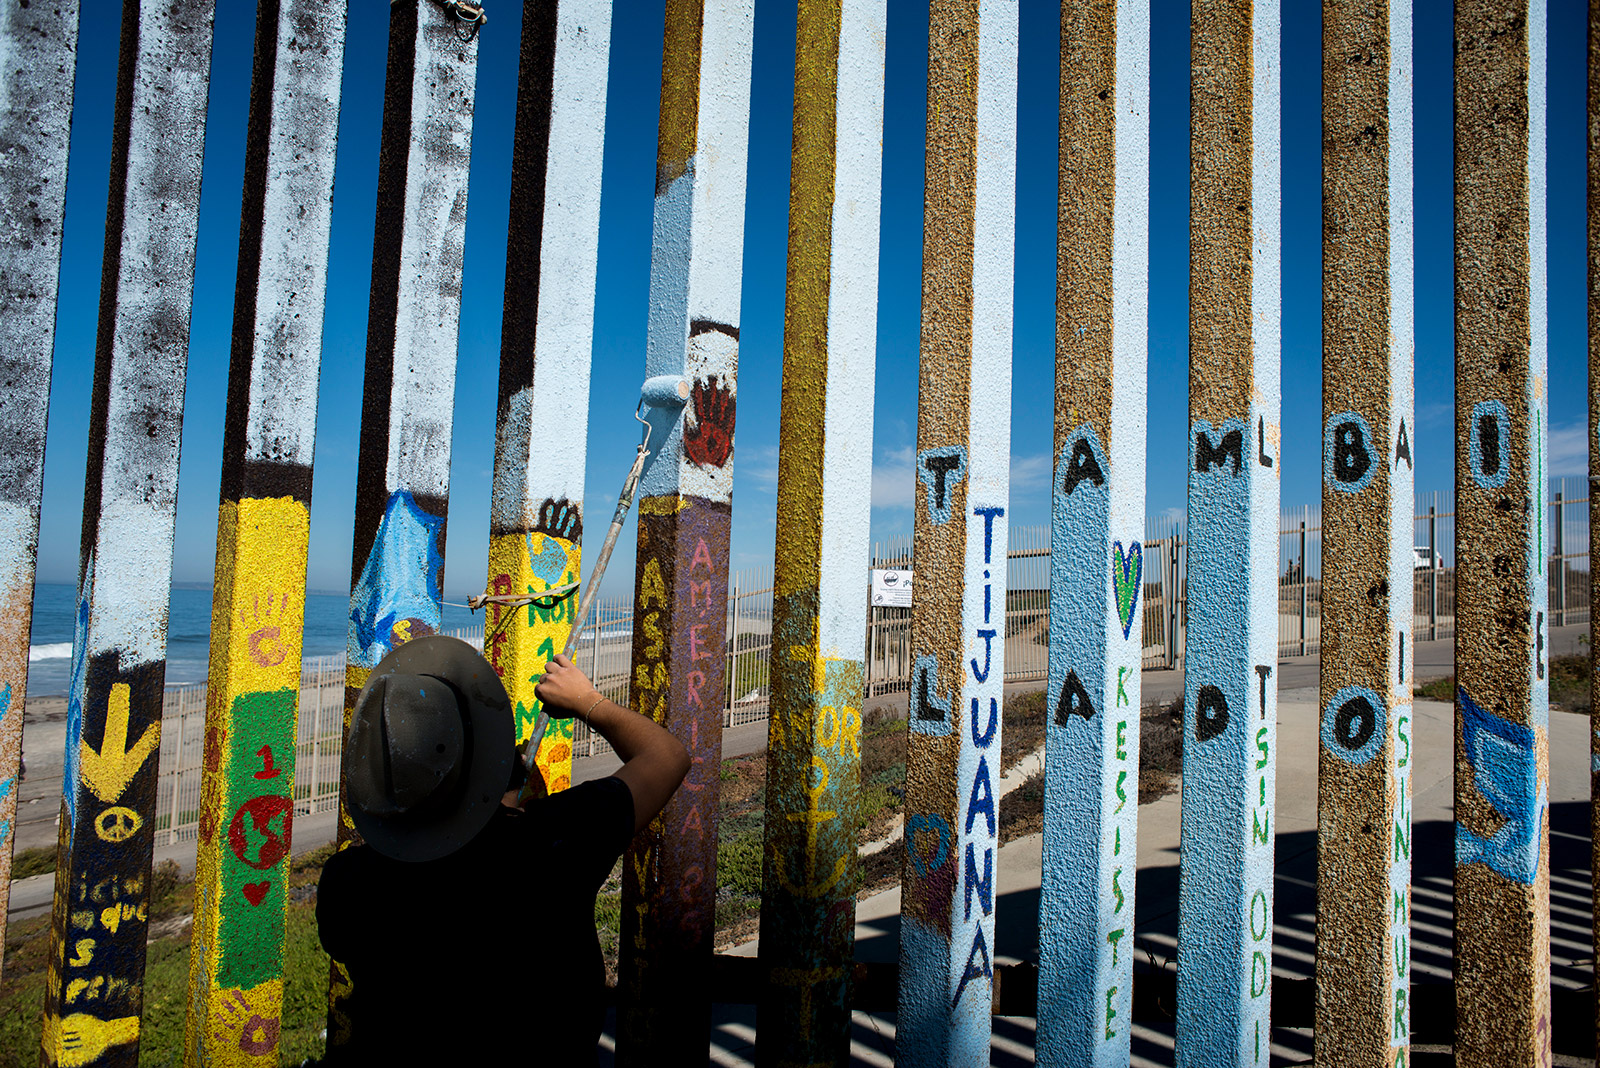 Luis Marmolejo volunteers with muralist Enrique Chiu on Oct. 7, 2017, to paint the far eastern edge of fencing along the U.S.-Mexico border. With the ocean less than 100 meters away from where the group was painting, Chiu said the saltwater quickly erodes the metal bars that separate the two countries. <em>(Brandon Quester/inewsource)</em>